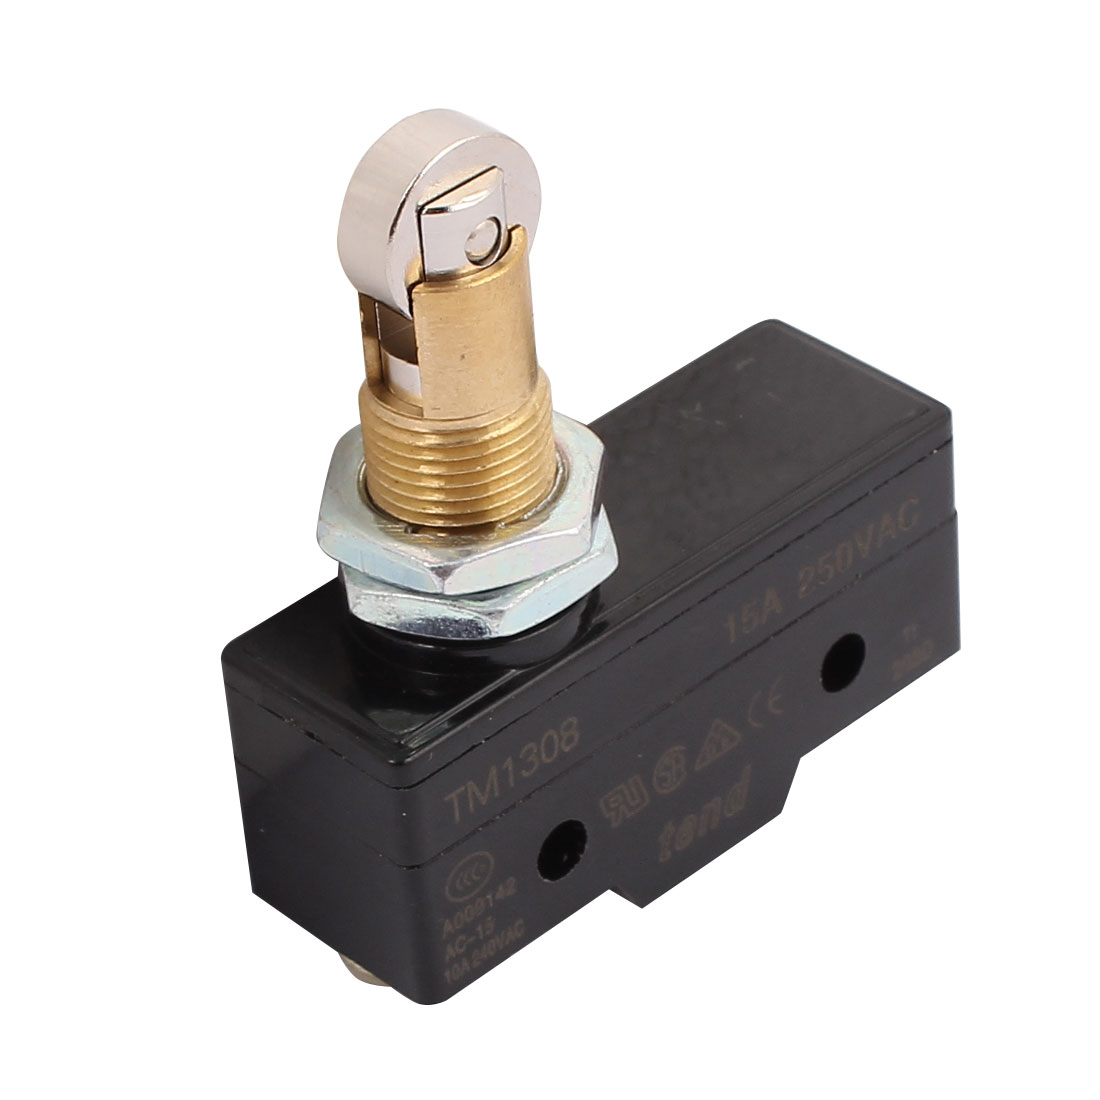 TM-1308 Parallel Roller Plunger Momentary Limit Micro Switch 250V 15A